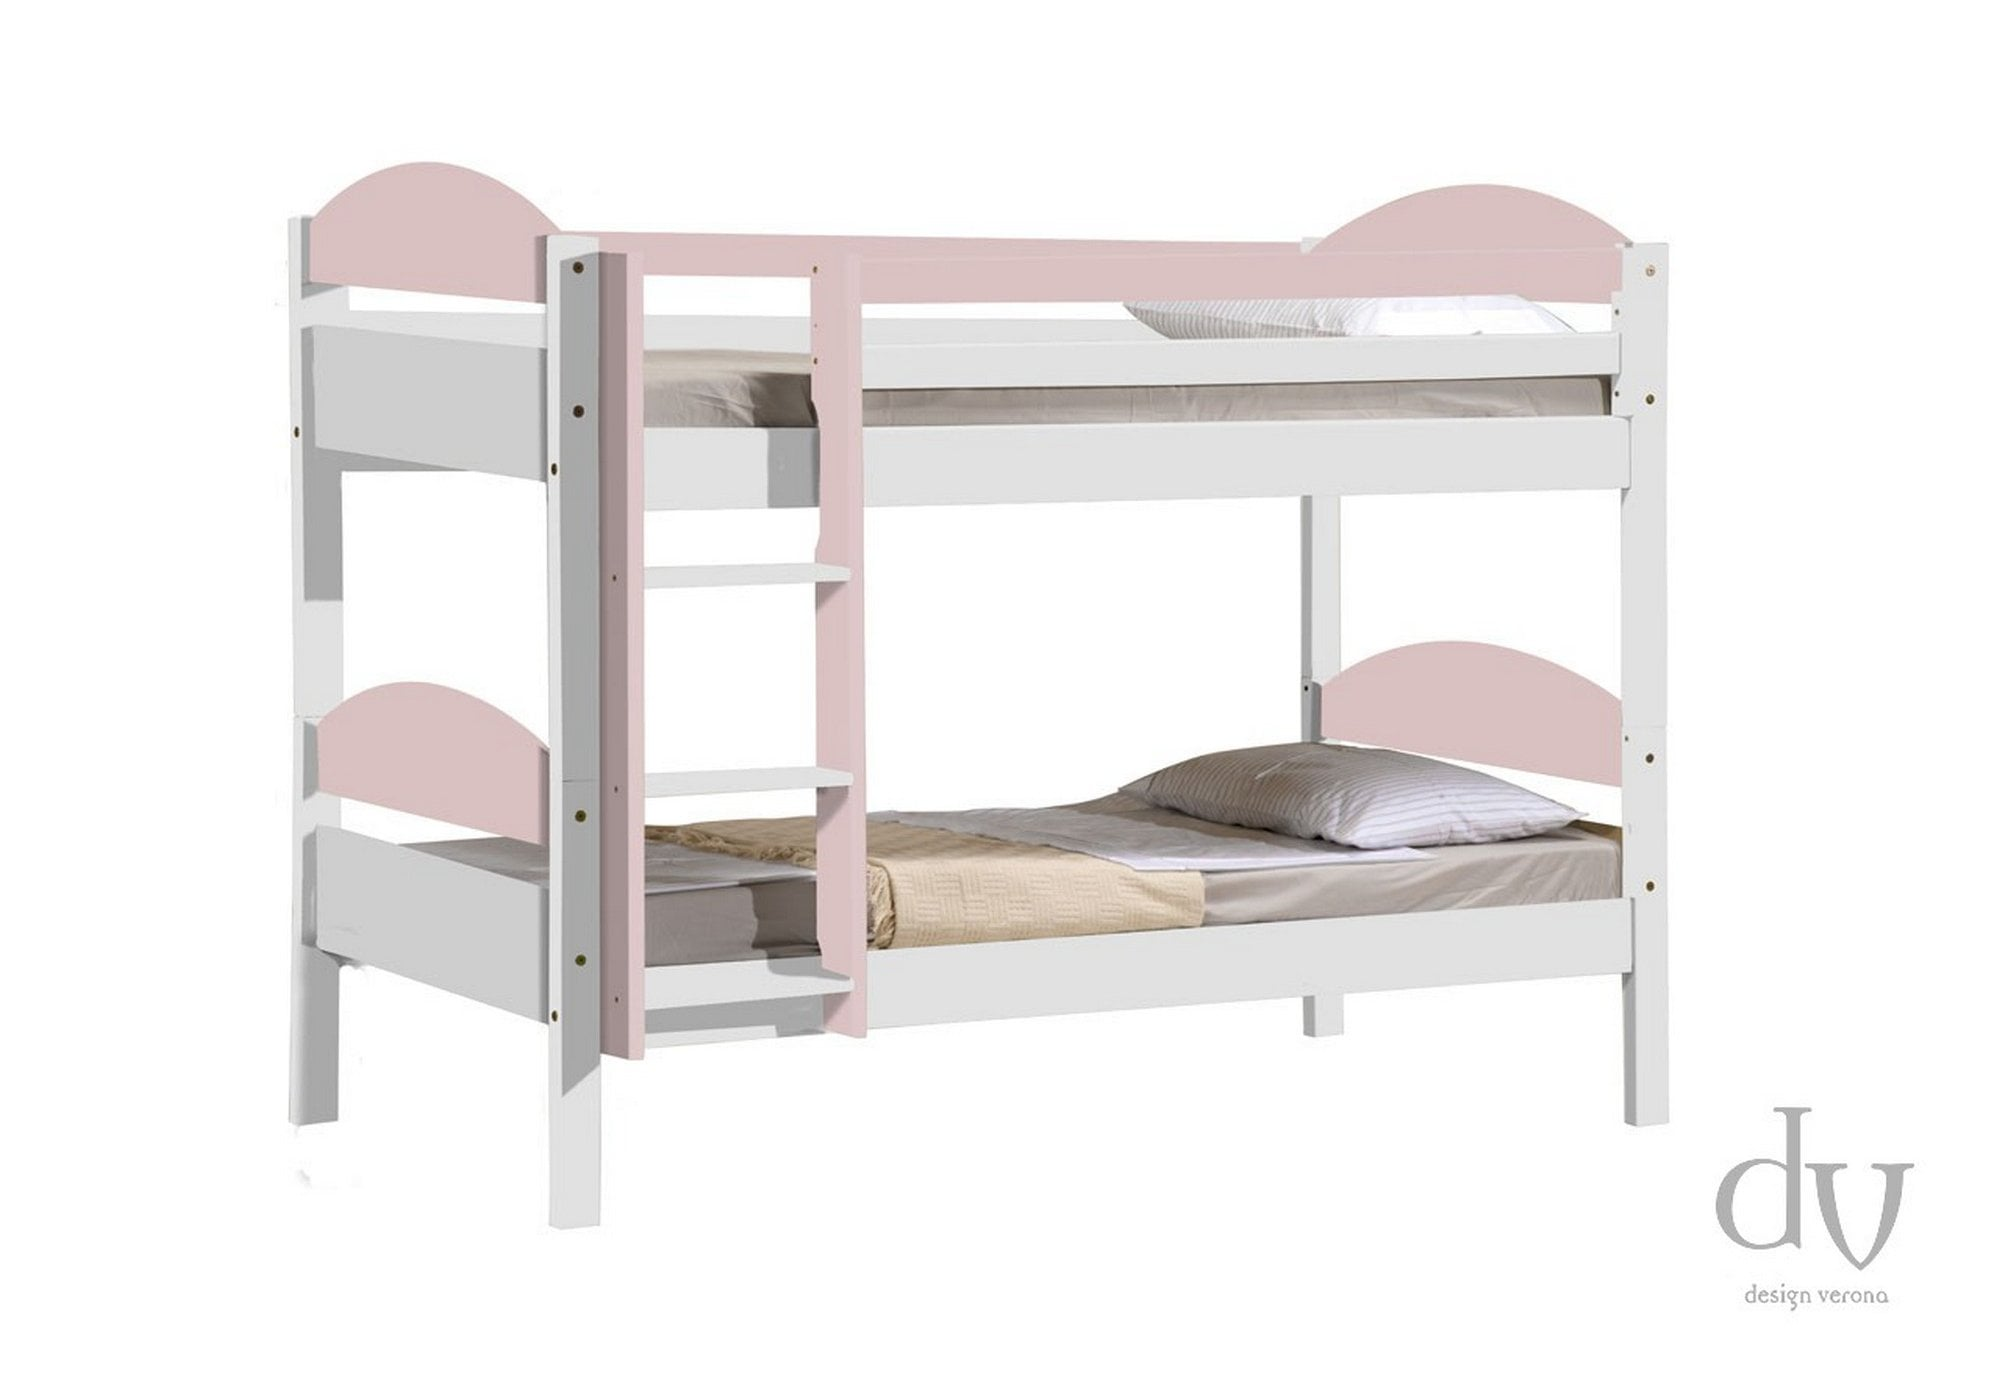 Picture of: Verona Design Verona Maximus Bunk Bed 3ft Whitewash With Pink Details Bunk Beds From Beds 4 Less Uk